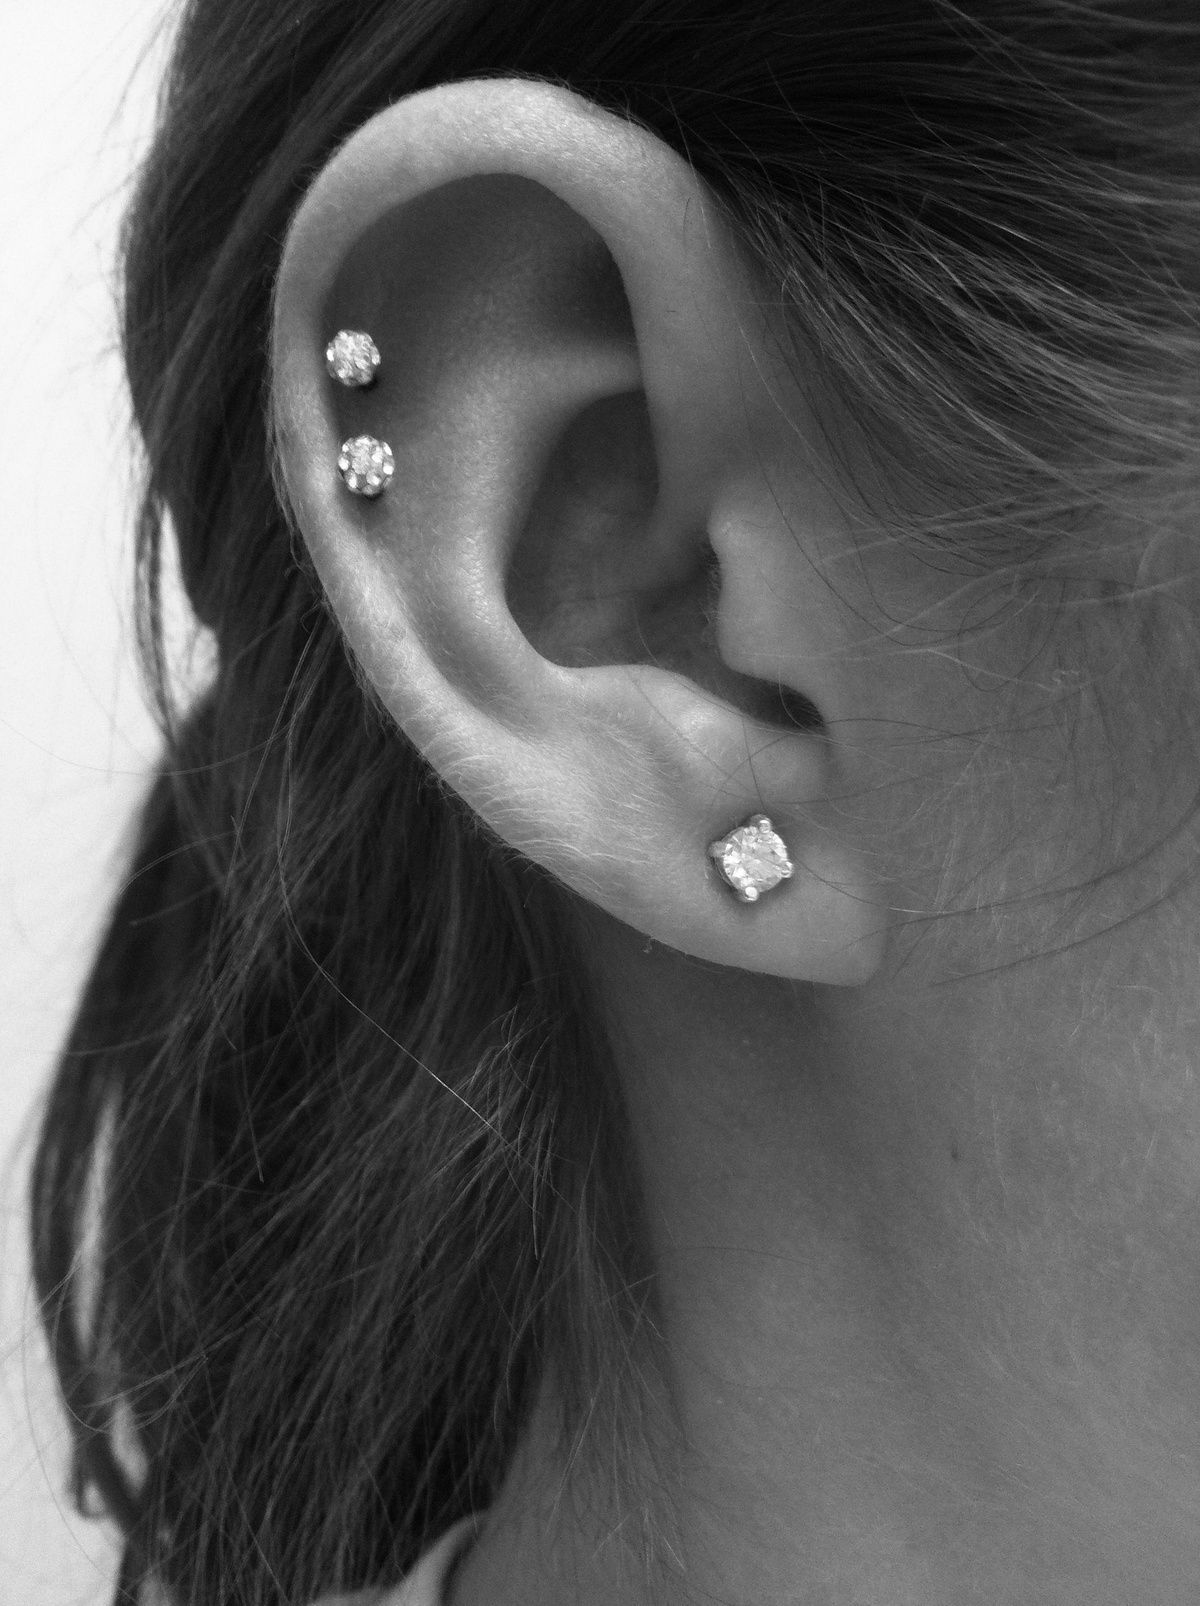 Pin by Chelsea Chavez on Homecoming ideas in 2019 ... Ear Piercings Cartilage